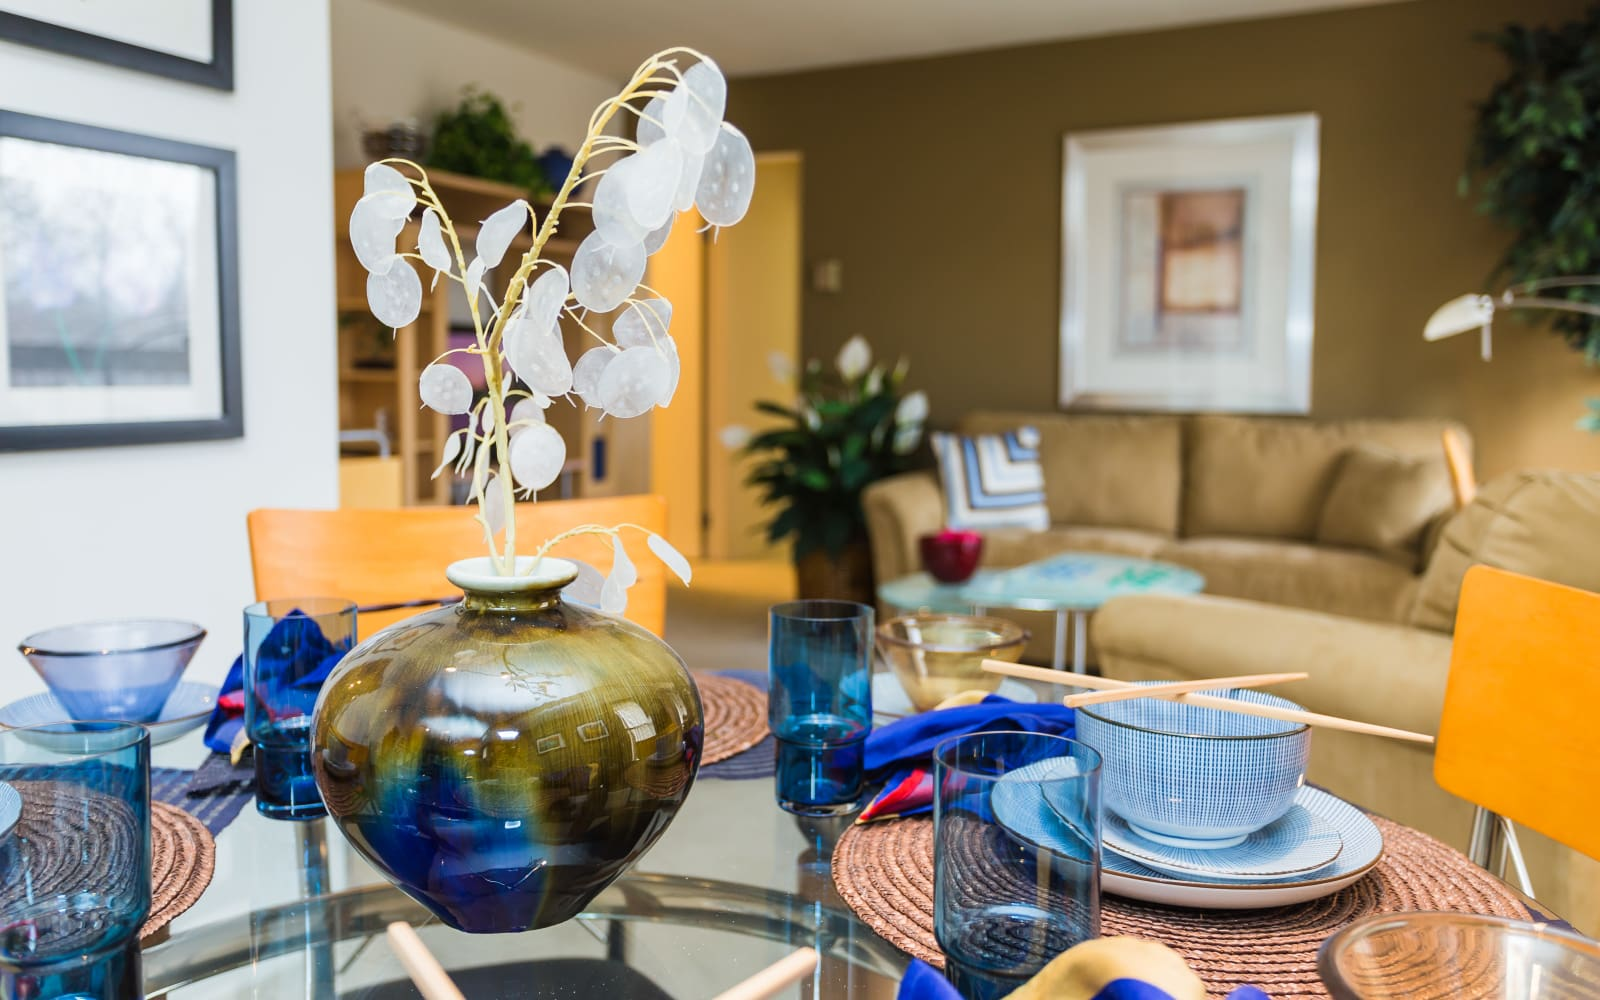 View from the dining room table at Fairmont Park Apartments in Farmington Hills, Michigan